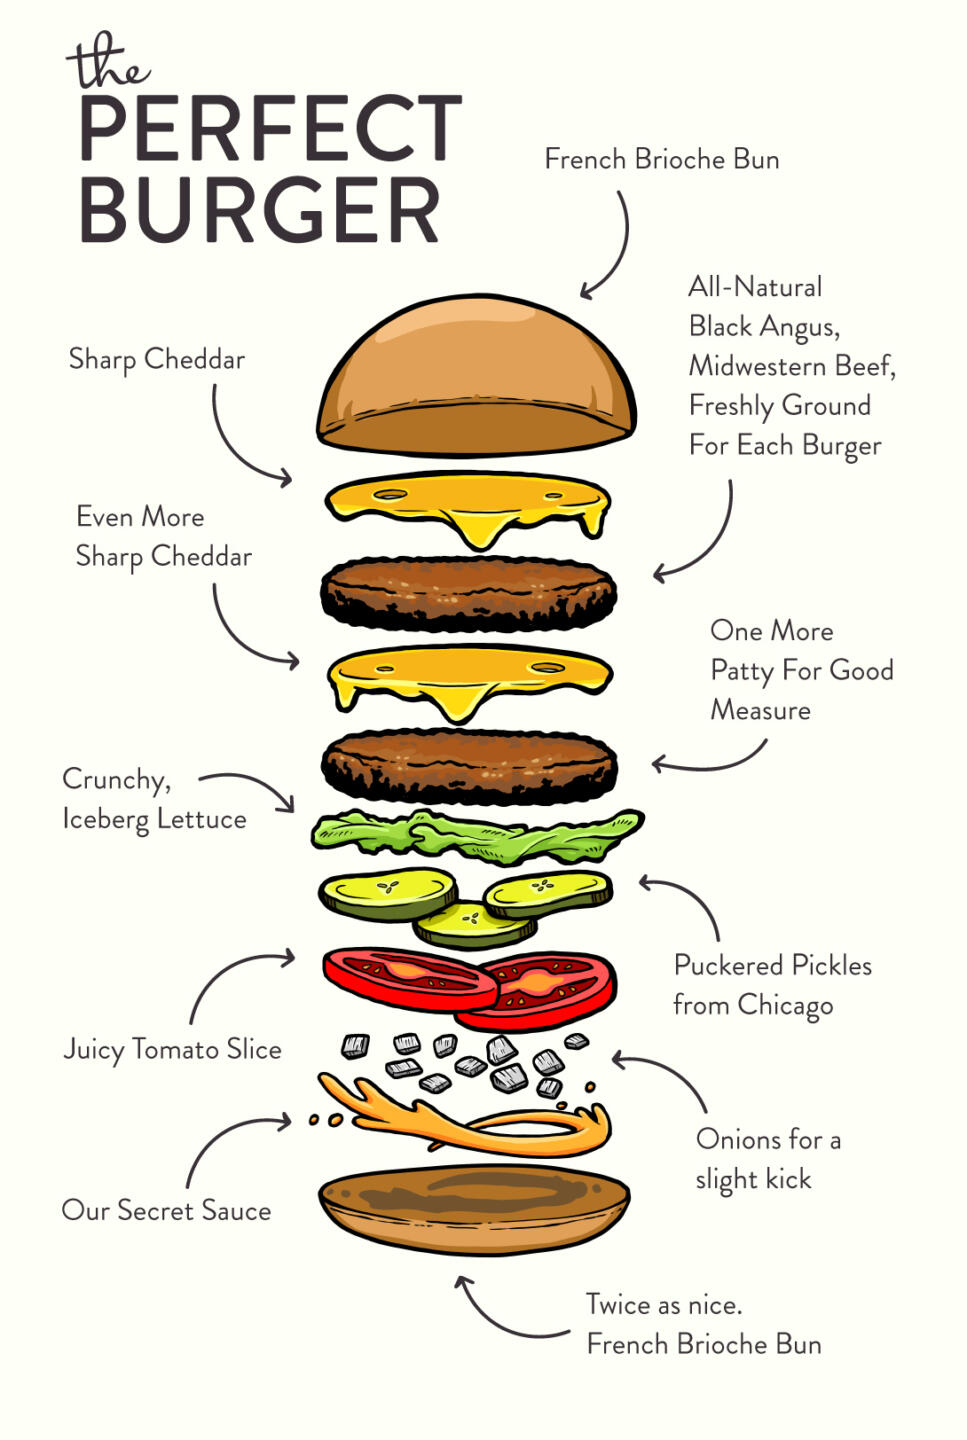 burger info graphic of the breakdown of a prfect burger from M Burger